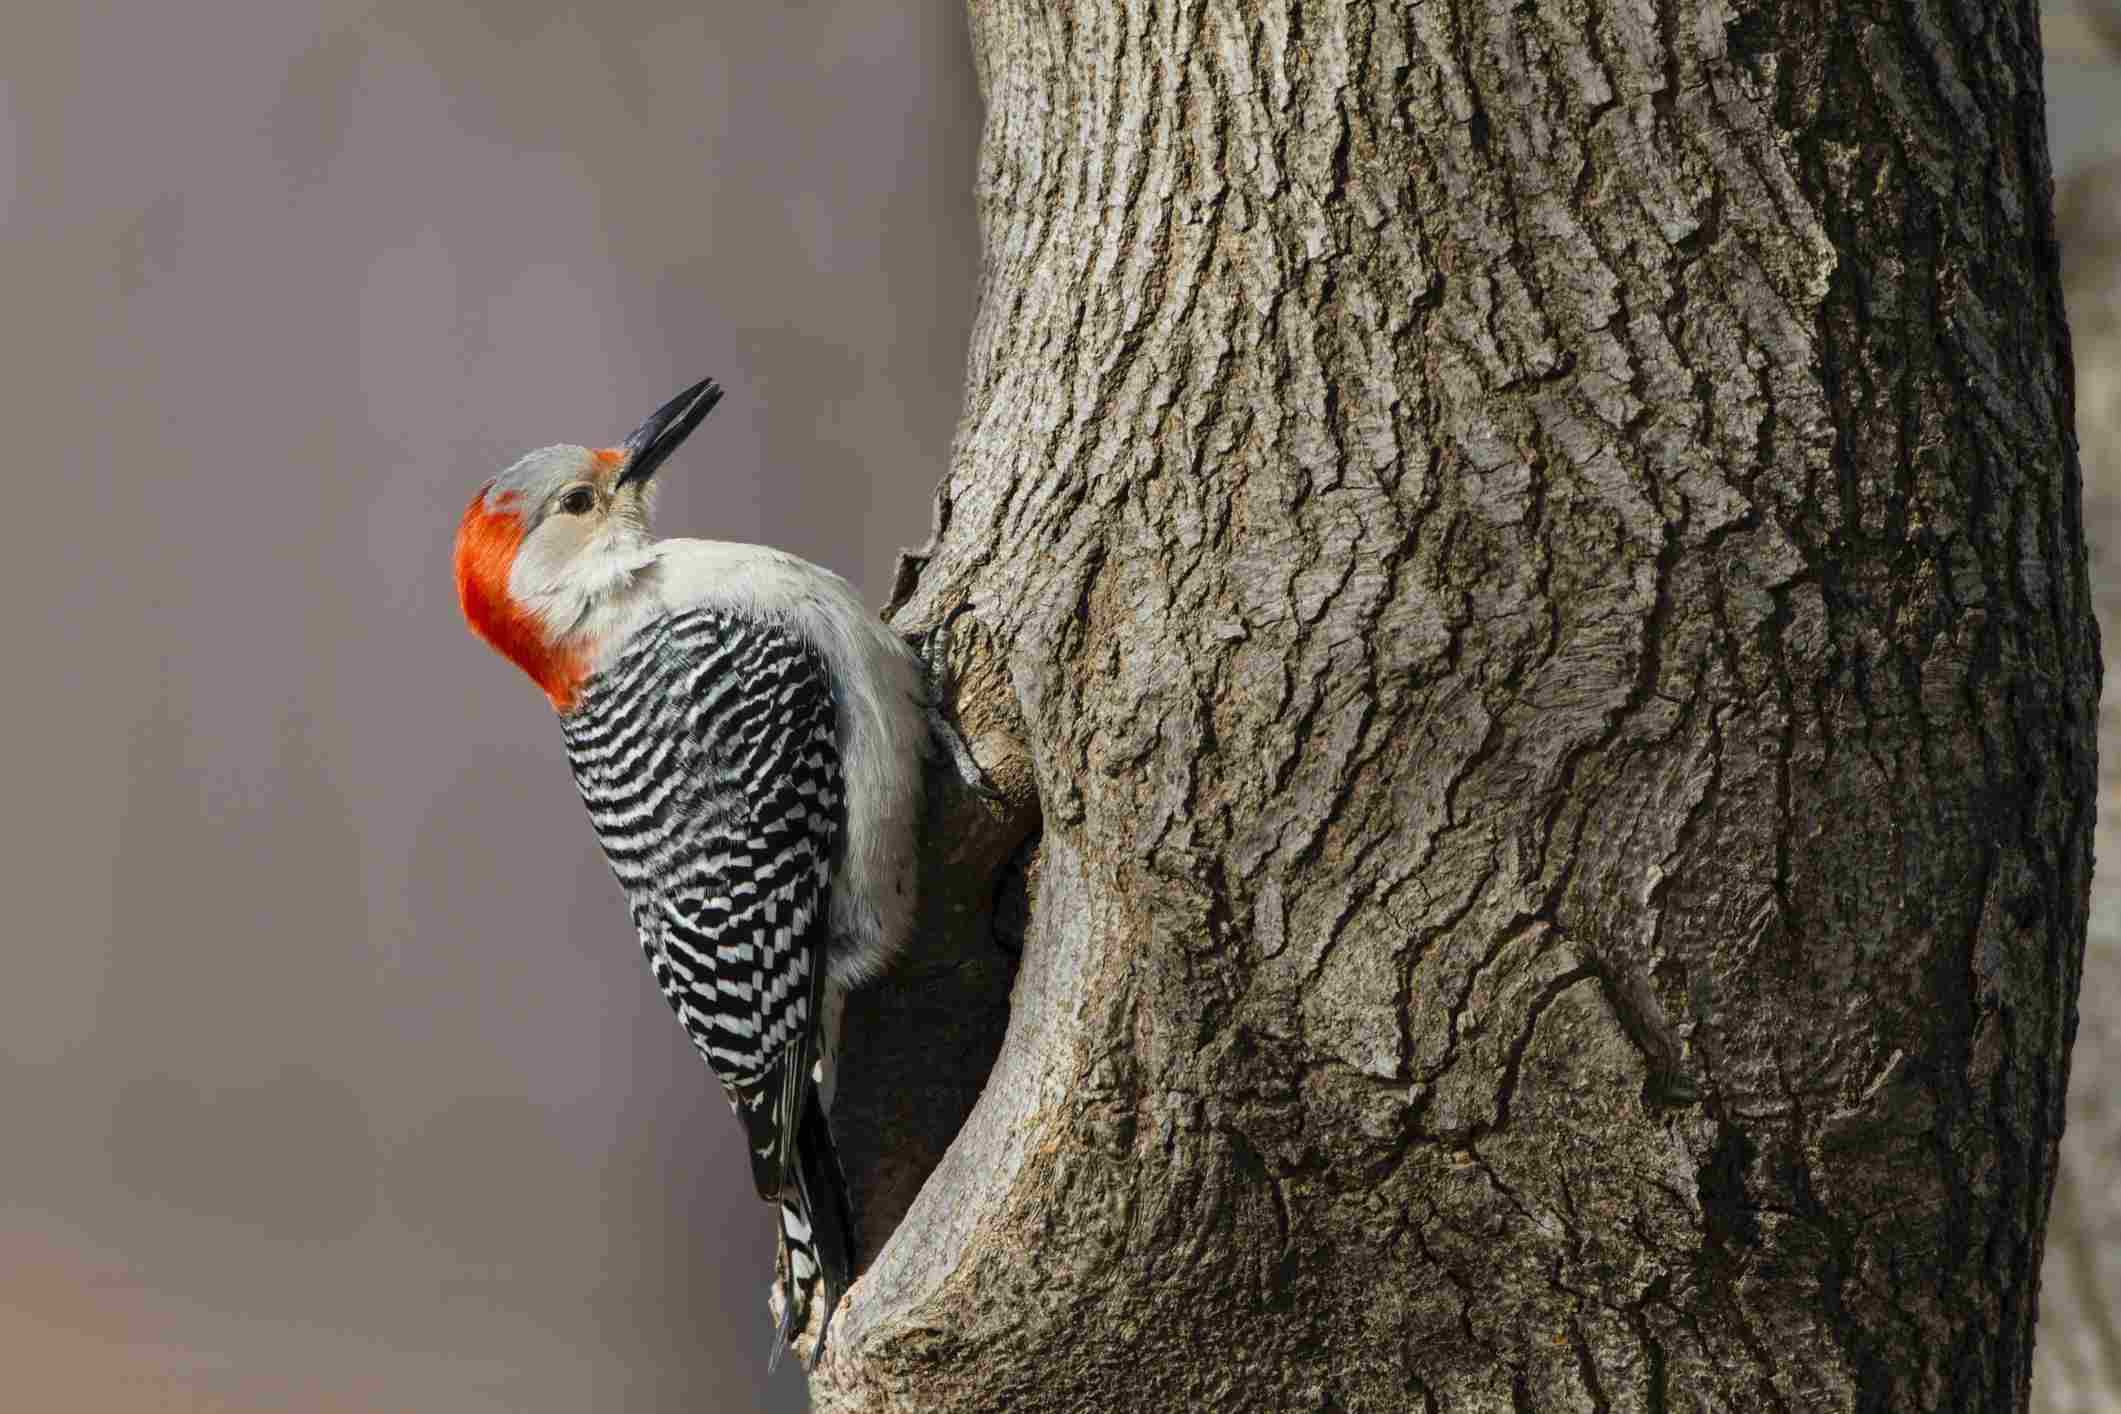 Woodpecker perched on a tree